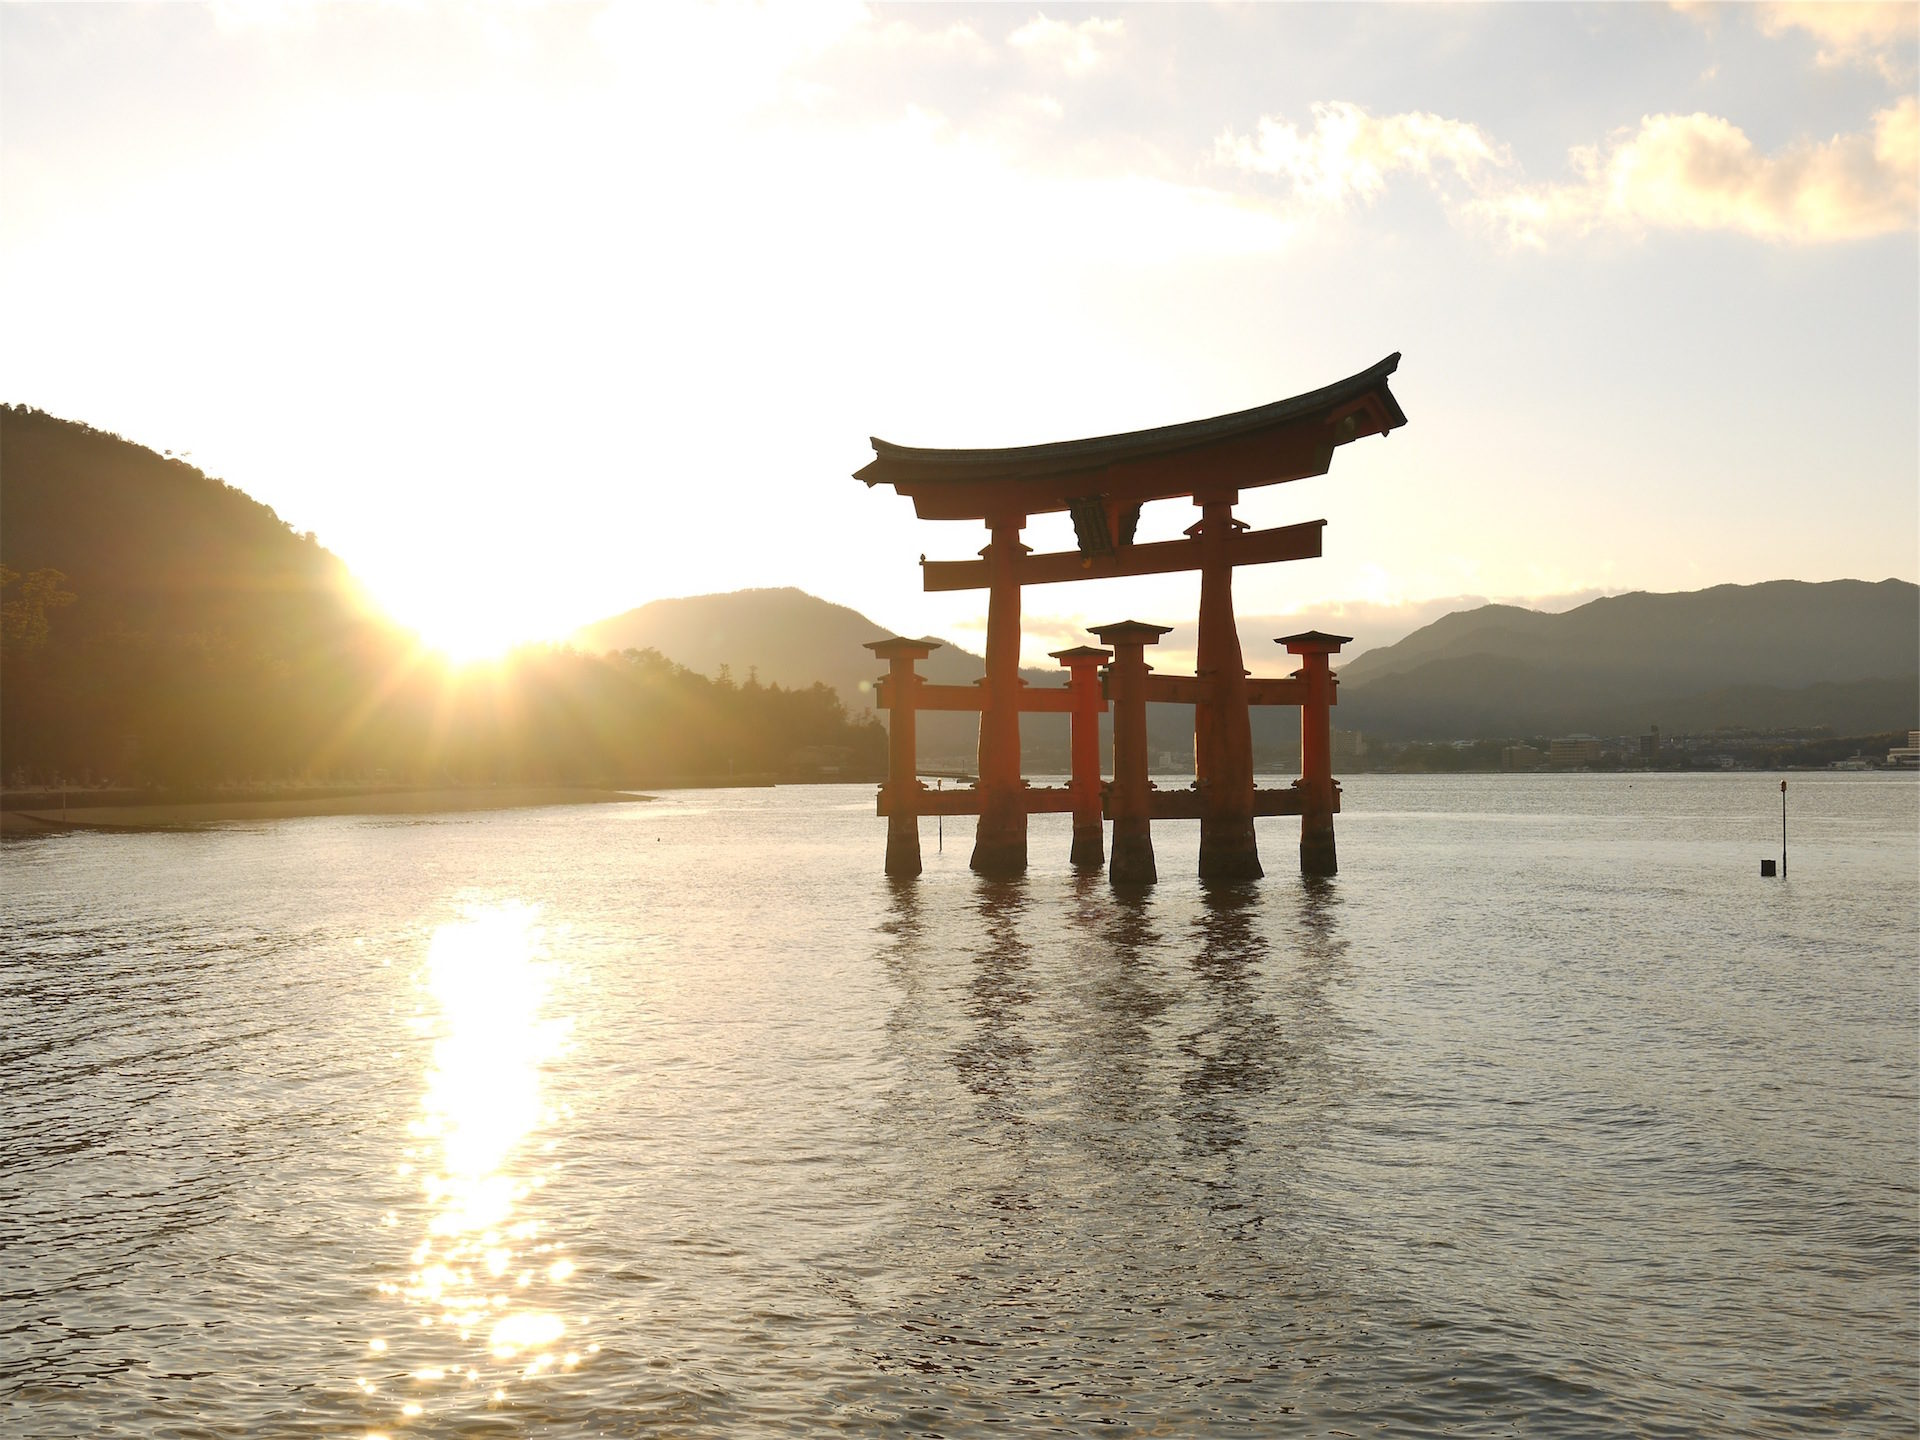 Lake, Skulptur, Japan, Sonne, steigt - Wallpaper HD - Prof.-falken.com